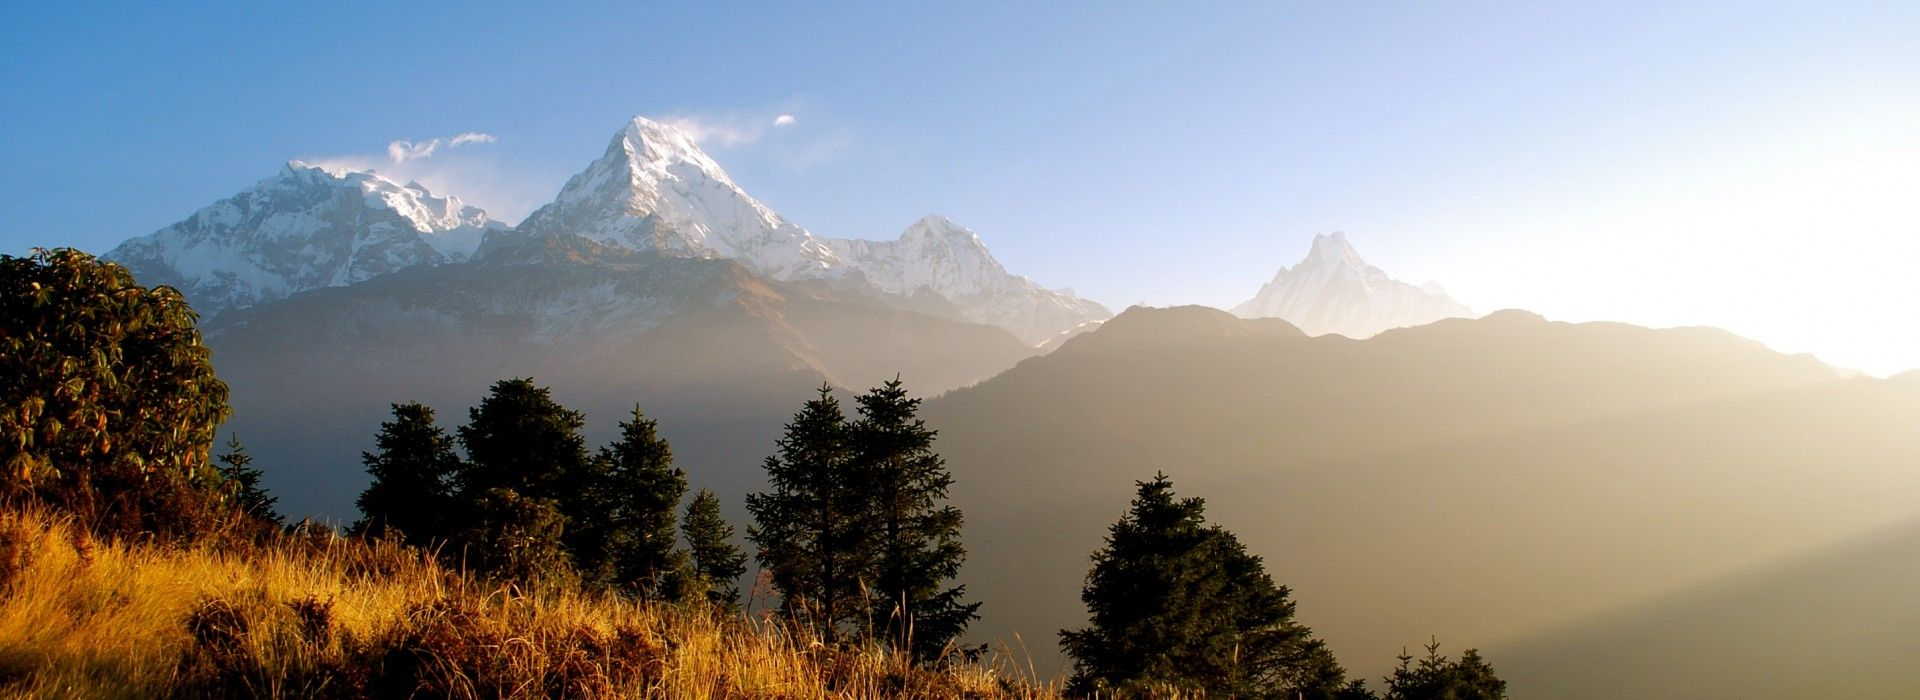 National parks Tours in Pokhara